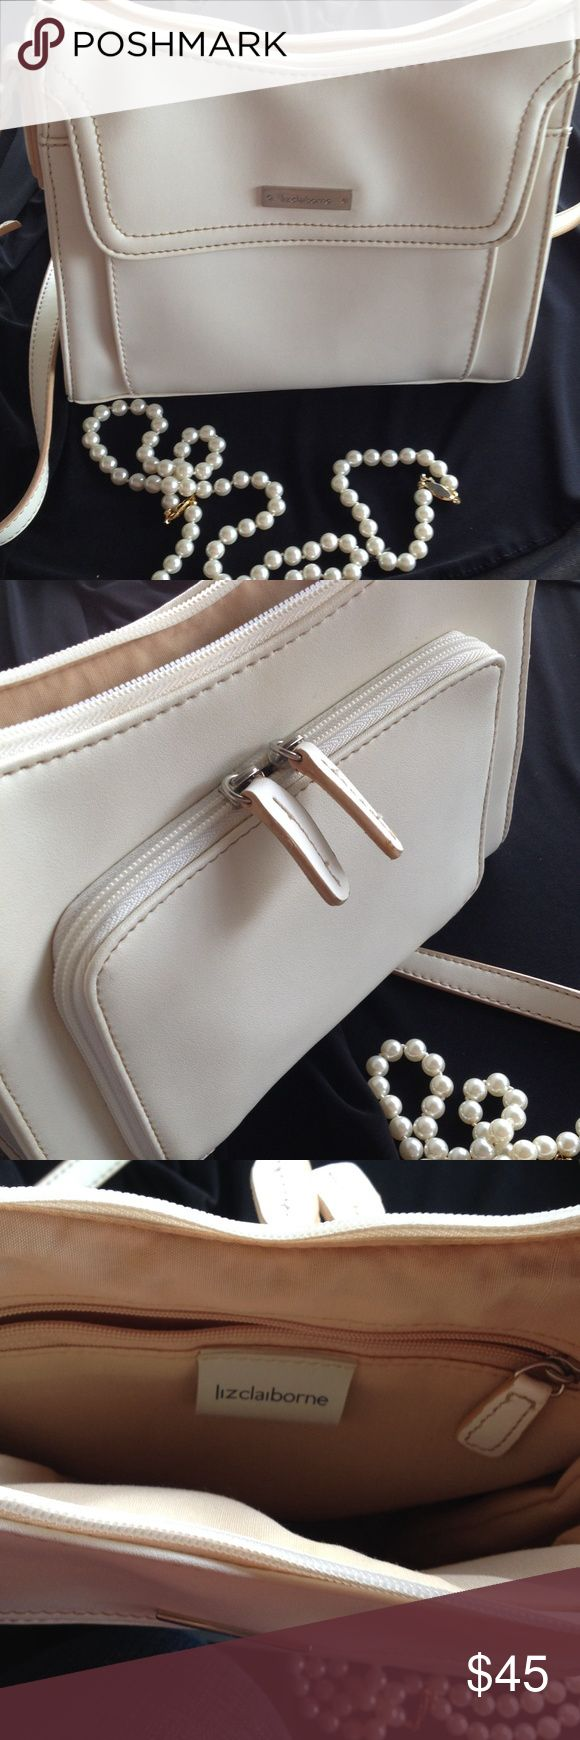 Liz Clairborne Purse Beautiful Liz Clairborne handbad in CREME and TAN. Plenty of space for credit cards, change, and small items on outer pocket, with spacious inside pocket and room for medium sized items such as cosmetics, phone, etc... Very good condition. I hate to part with it👜 Adjustable strap Liz Claiborne Bags Shoulder Bags